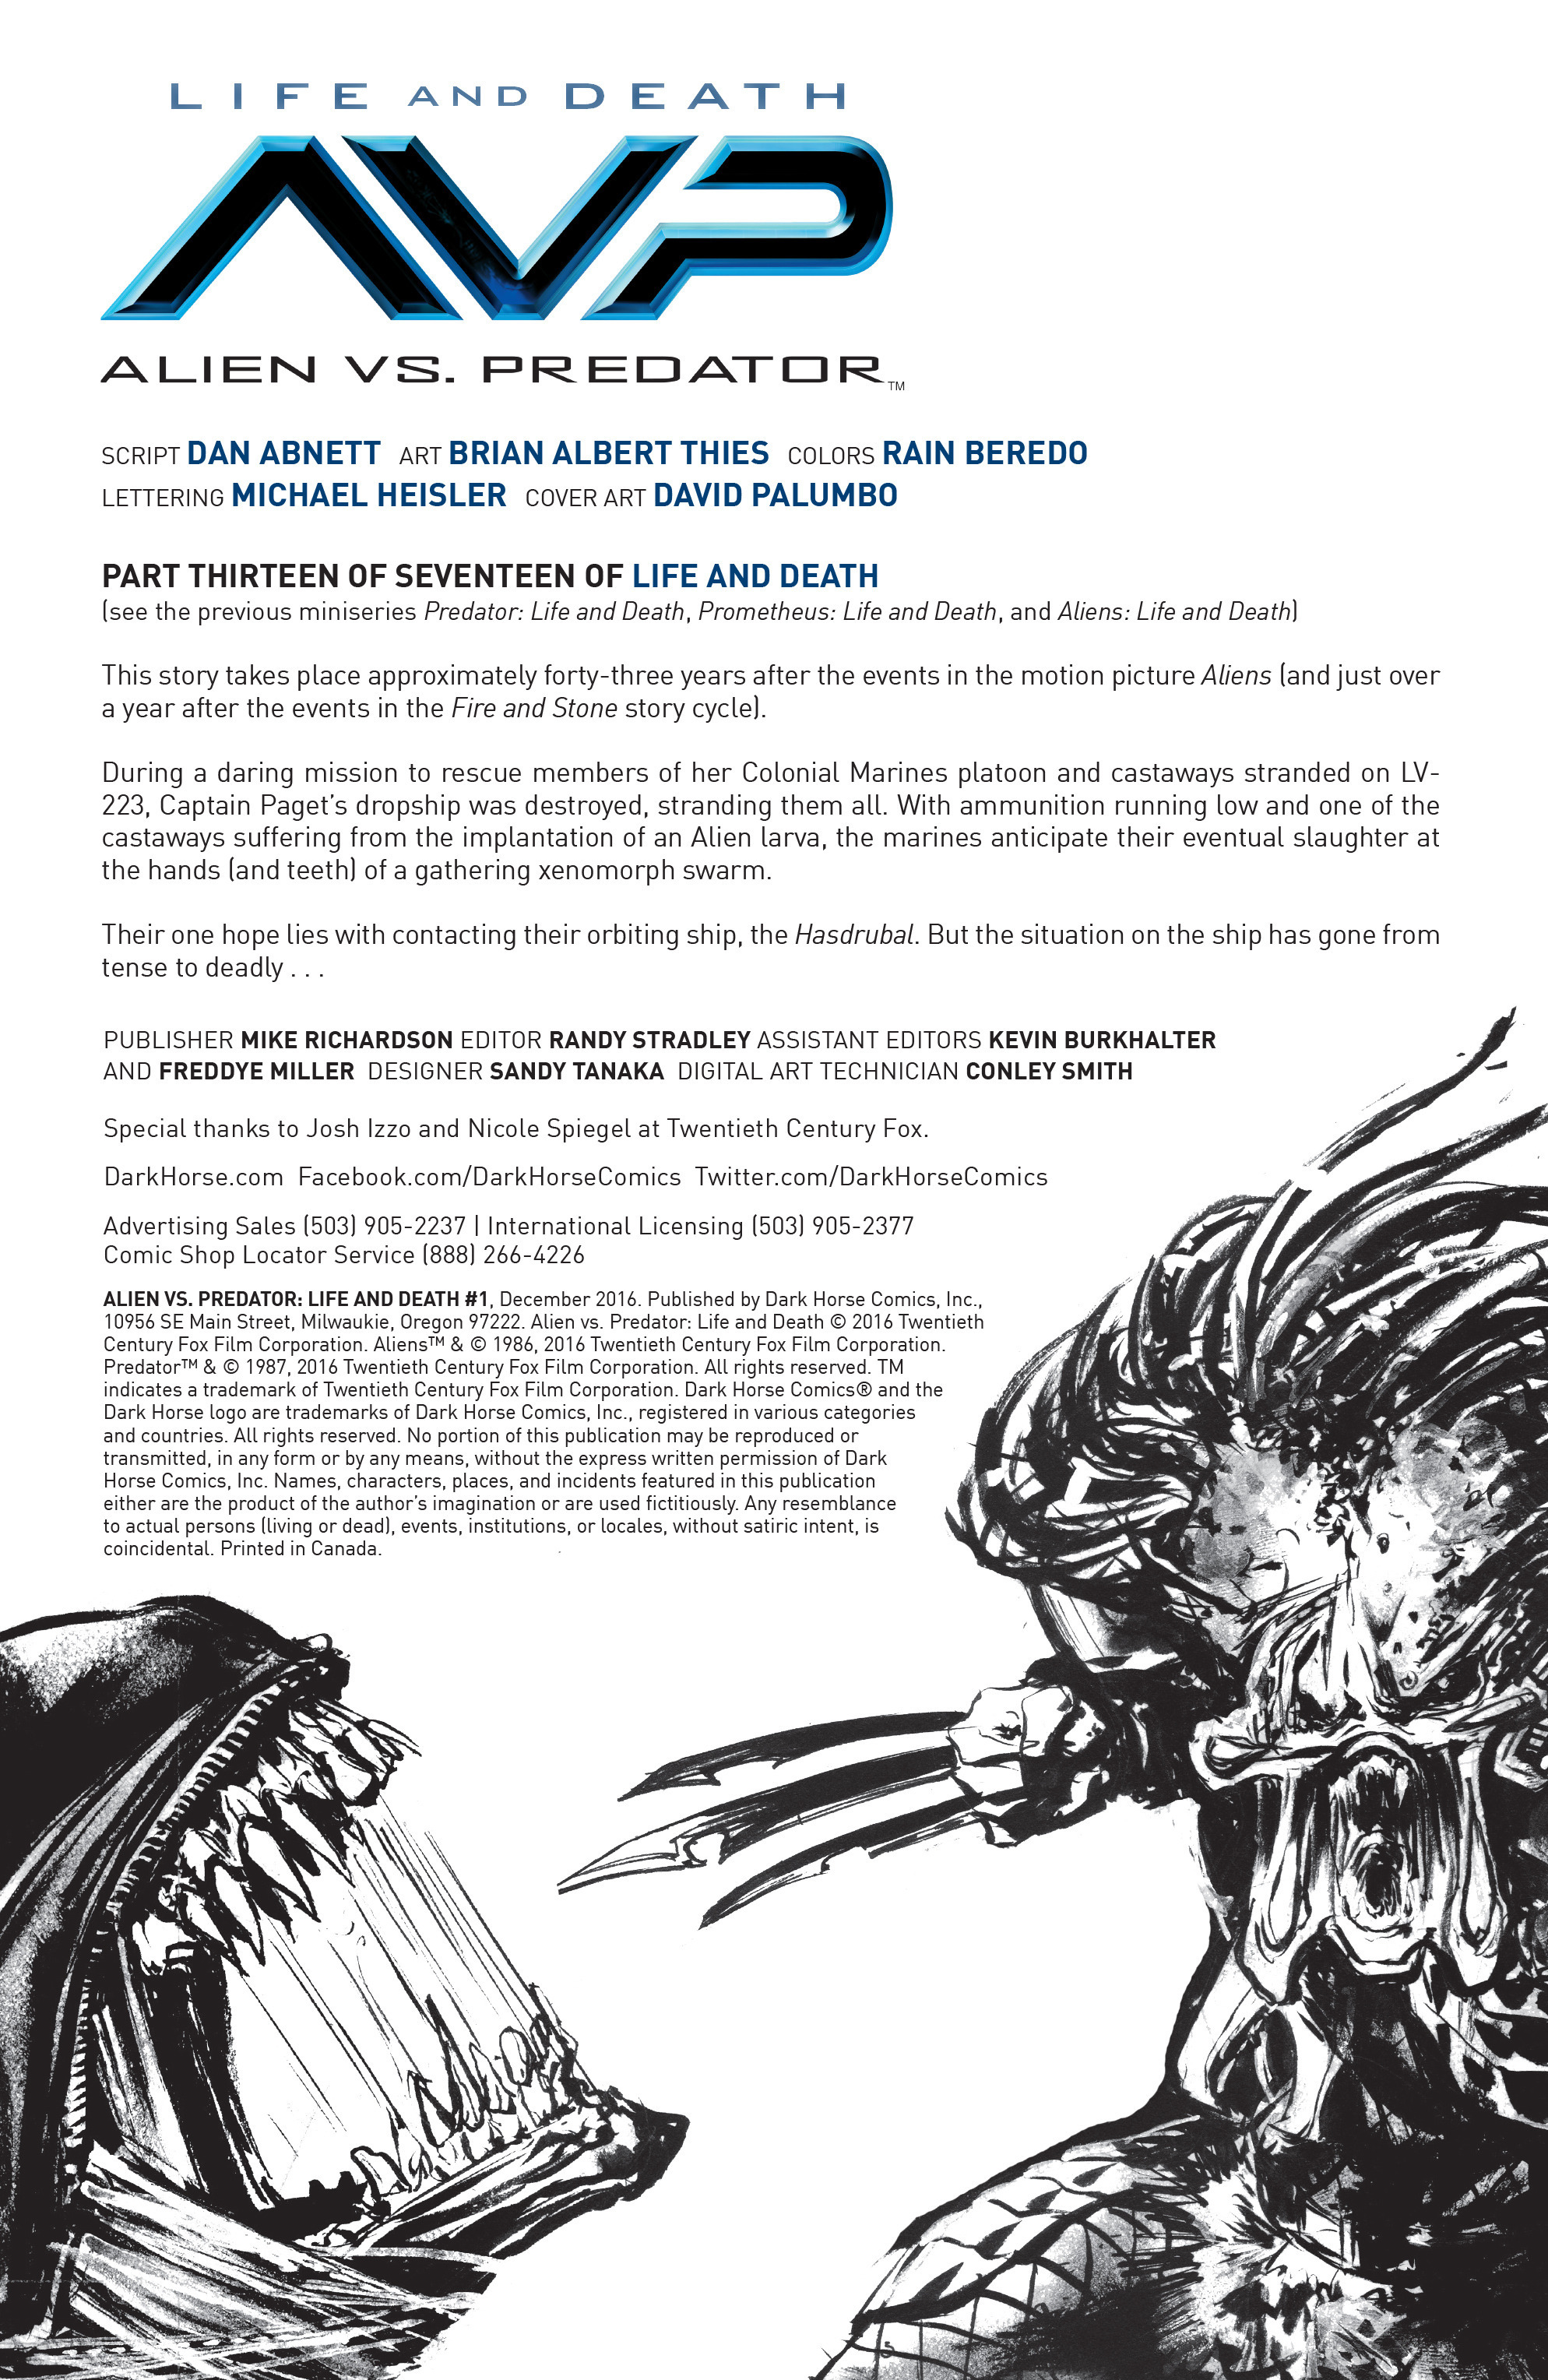 Read online Alien Vs. Predator: Life and Death comic -  Issue #1 - 4